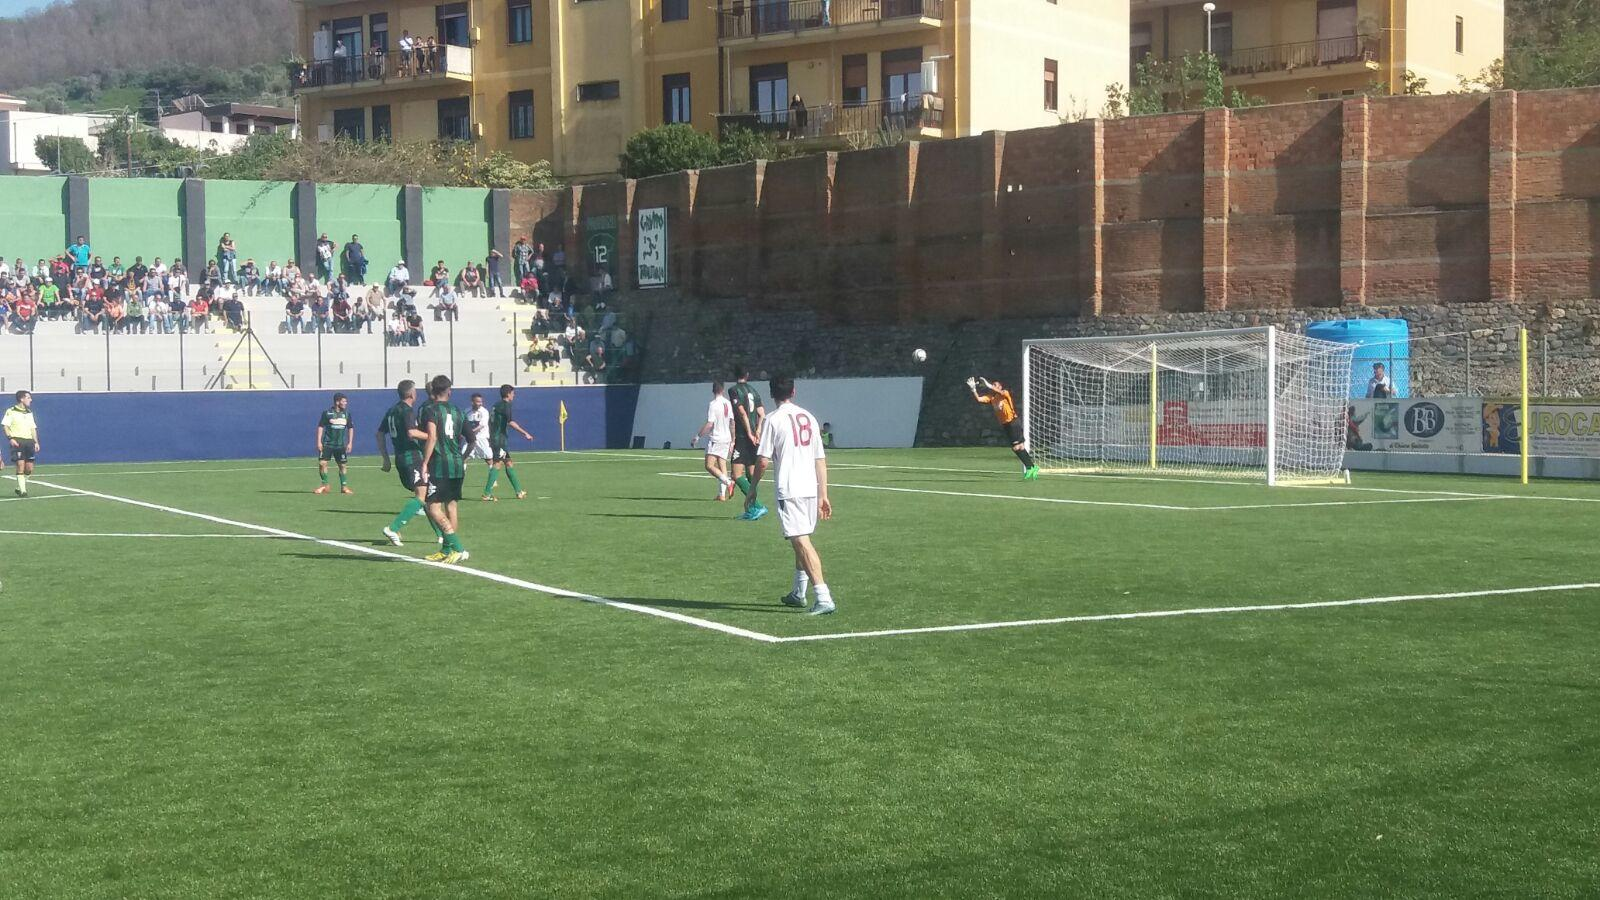 Serie D: Gelbison sconfitta, la salvezza passerà dai play out